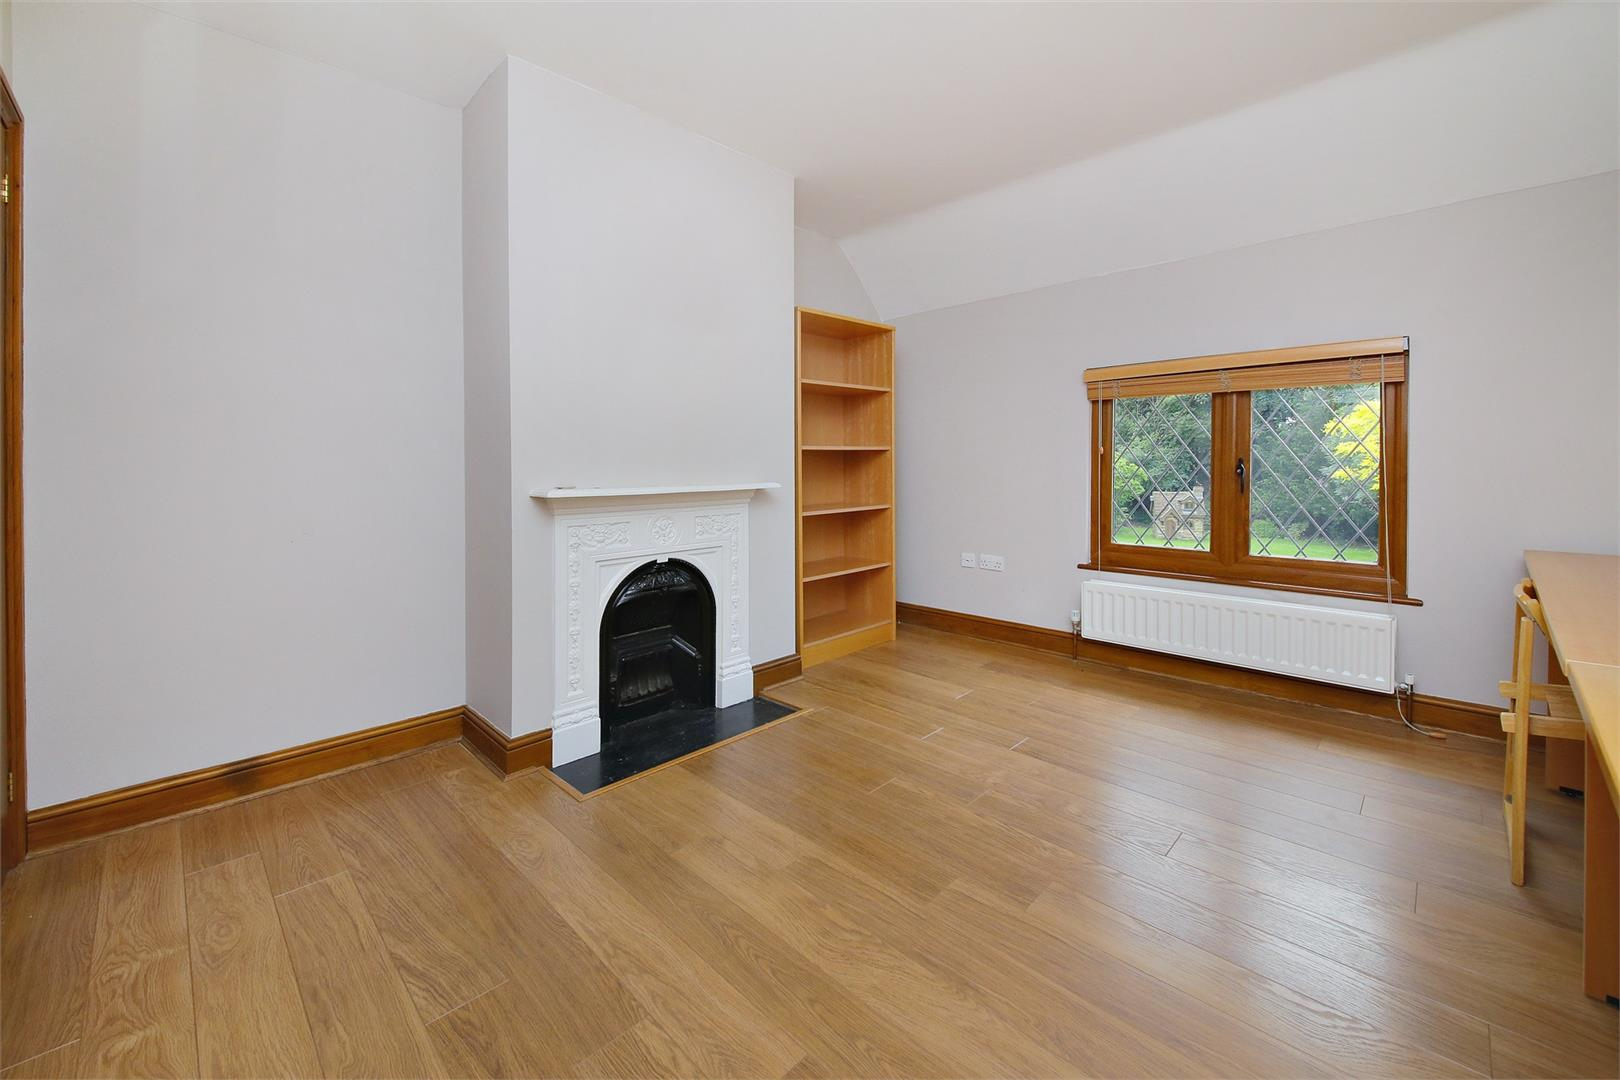 6 bed to rent in Elstree - (Property Image 9)